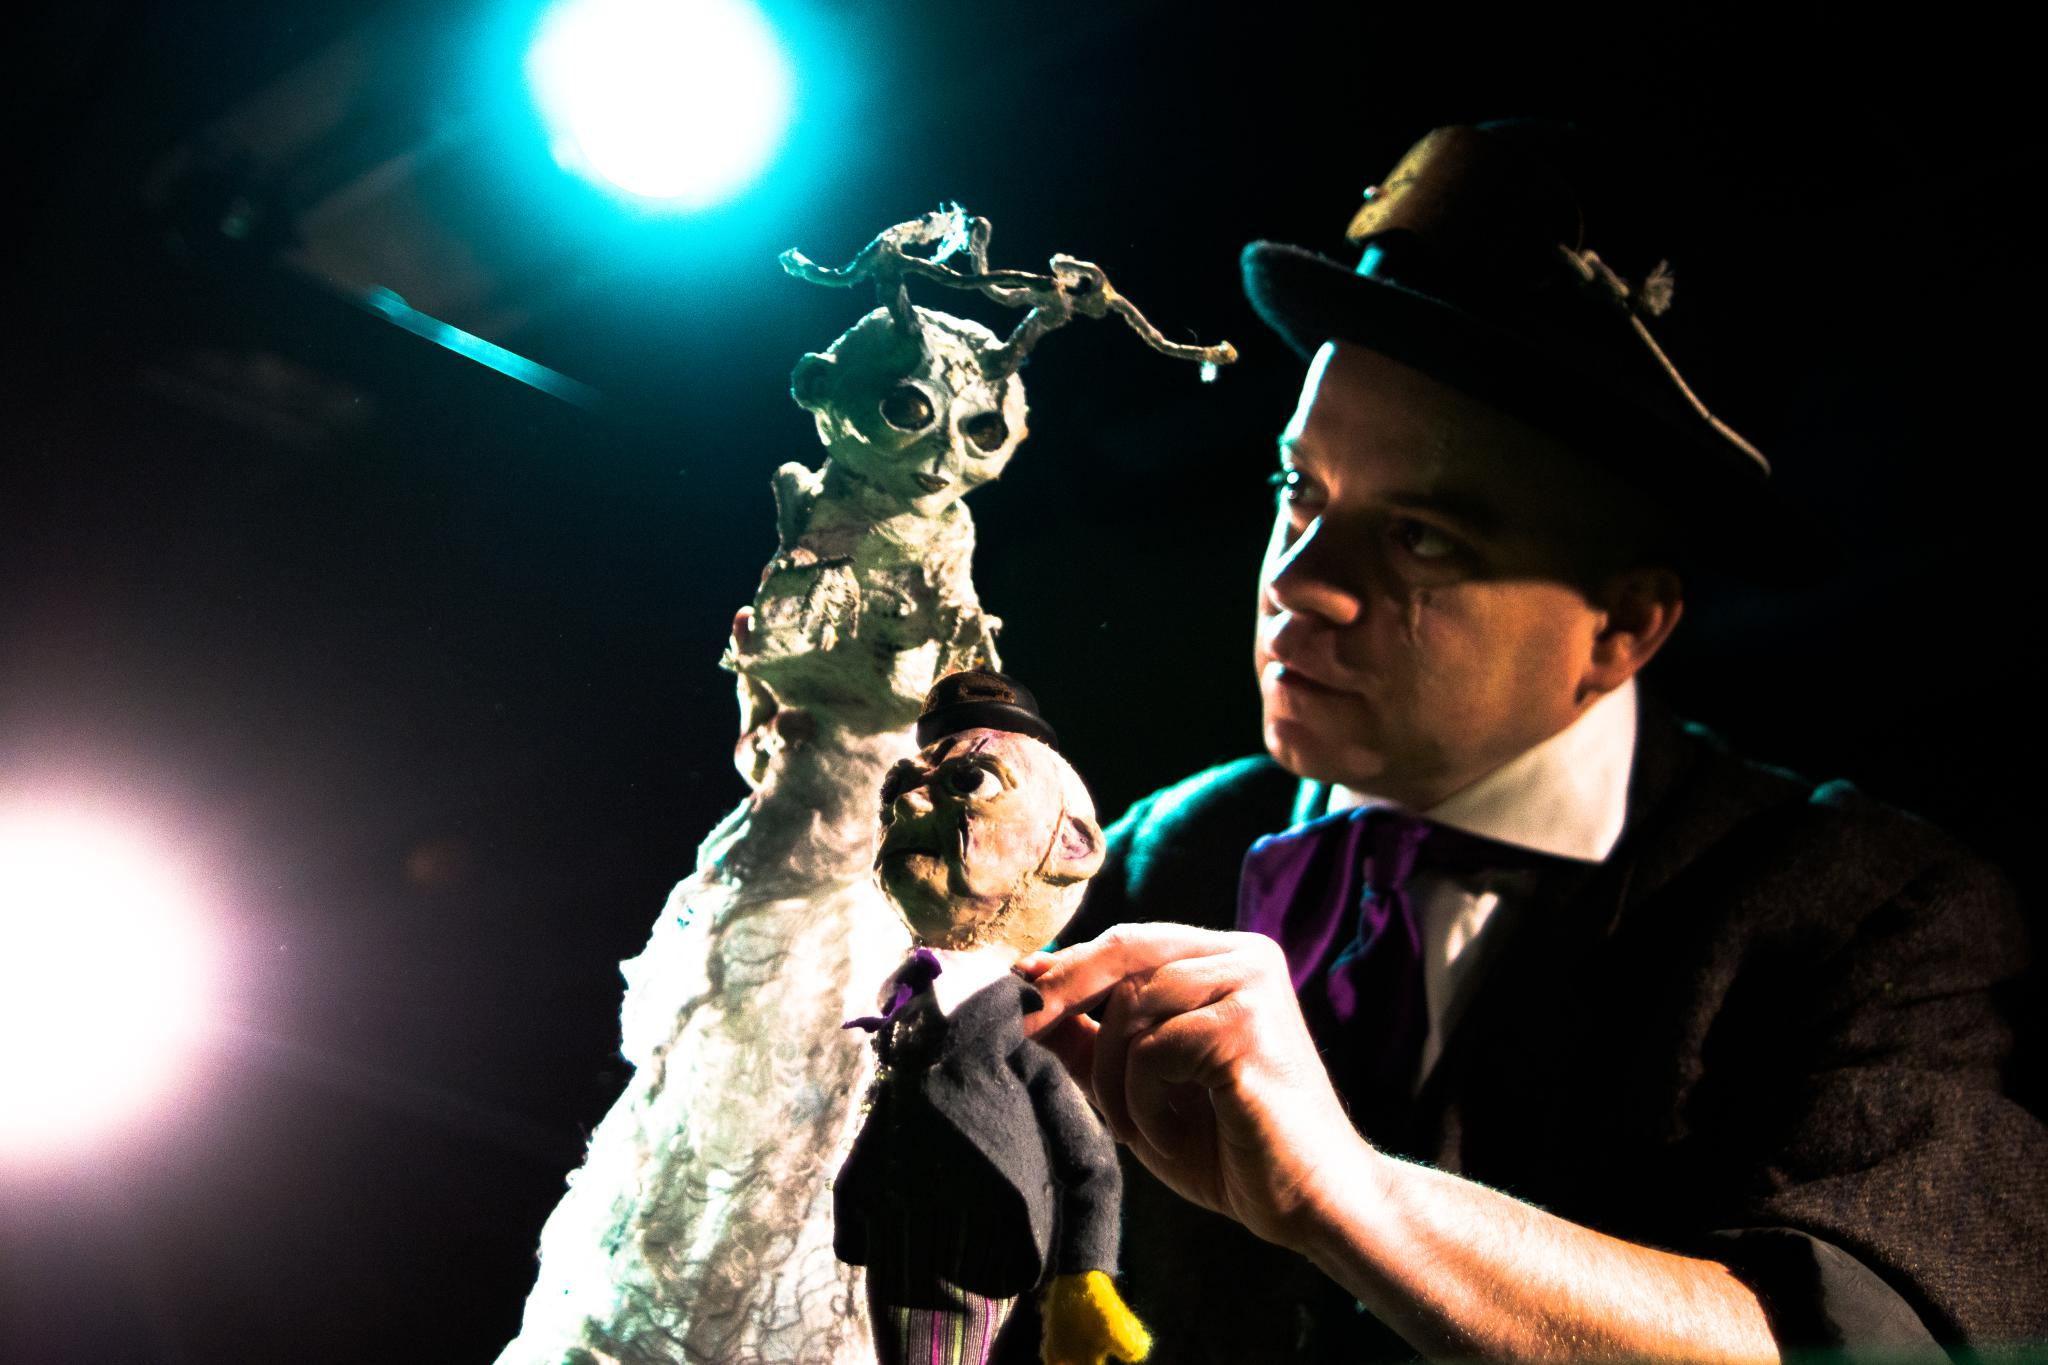 Eric Woolfe uses puppets and close-up magic based on the Faust Legend to tell an eerie tale of unholy larceny and Klondike gold.